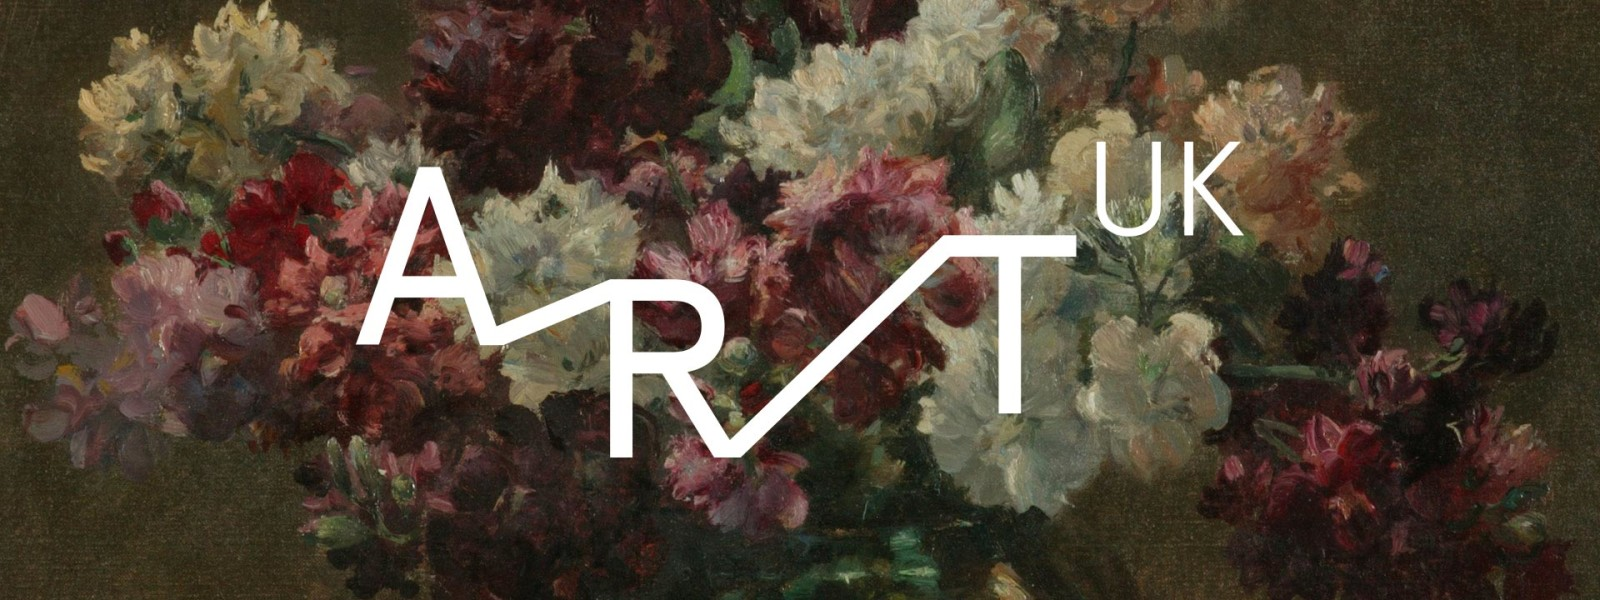 Image of Art UK logo on floral background